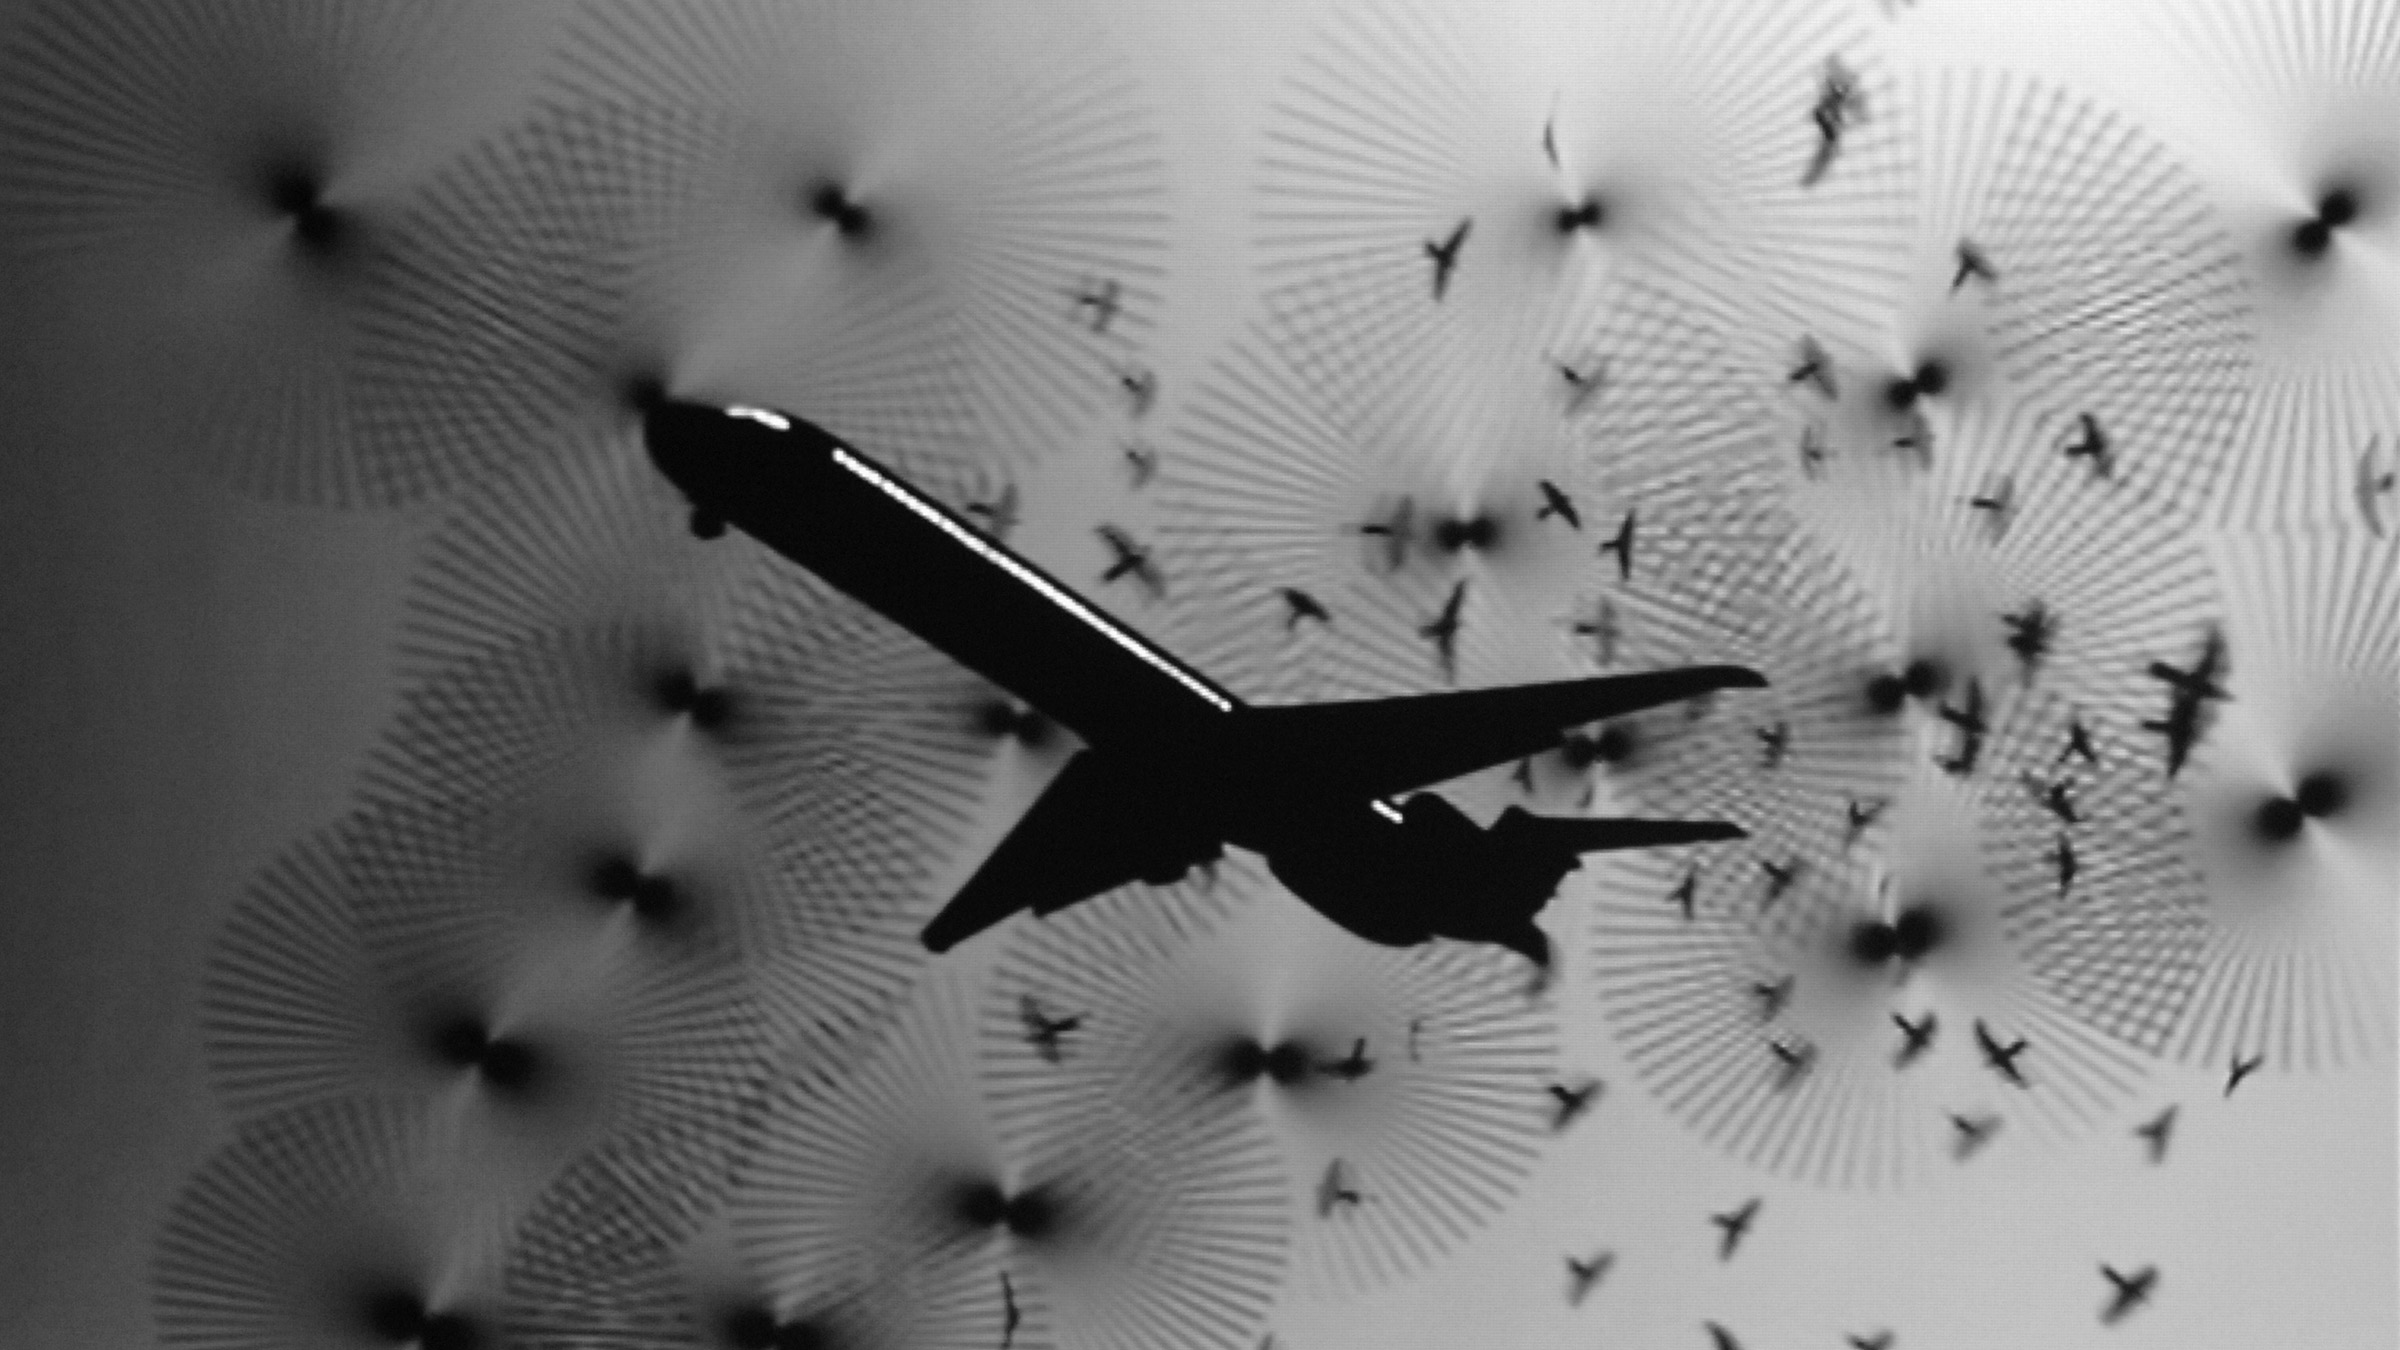 Black and white image of airplane with birds in the background